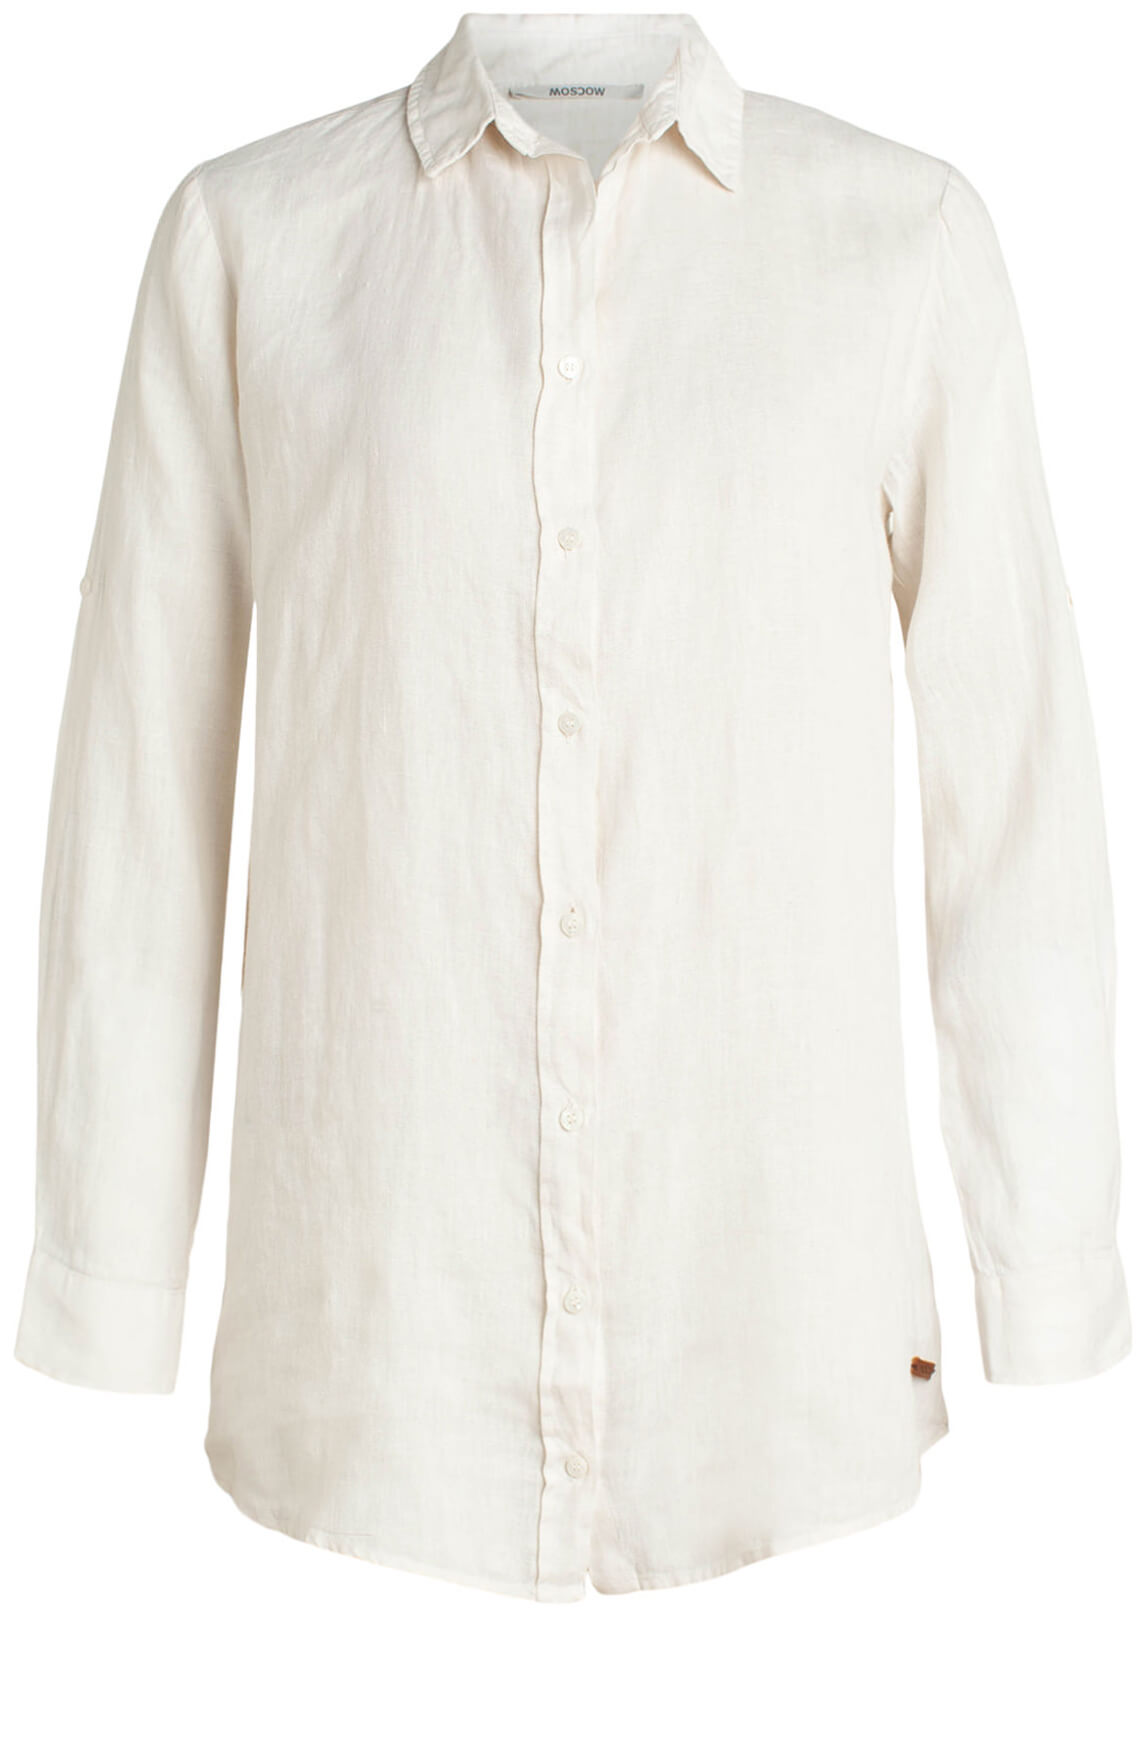 Moscow Dames Linnen blouse wit